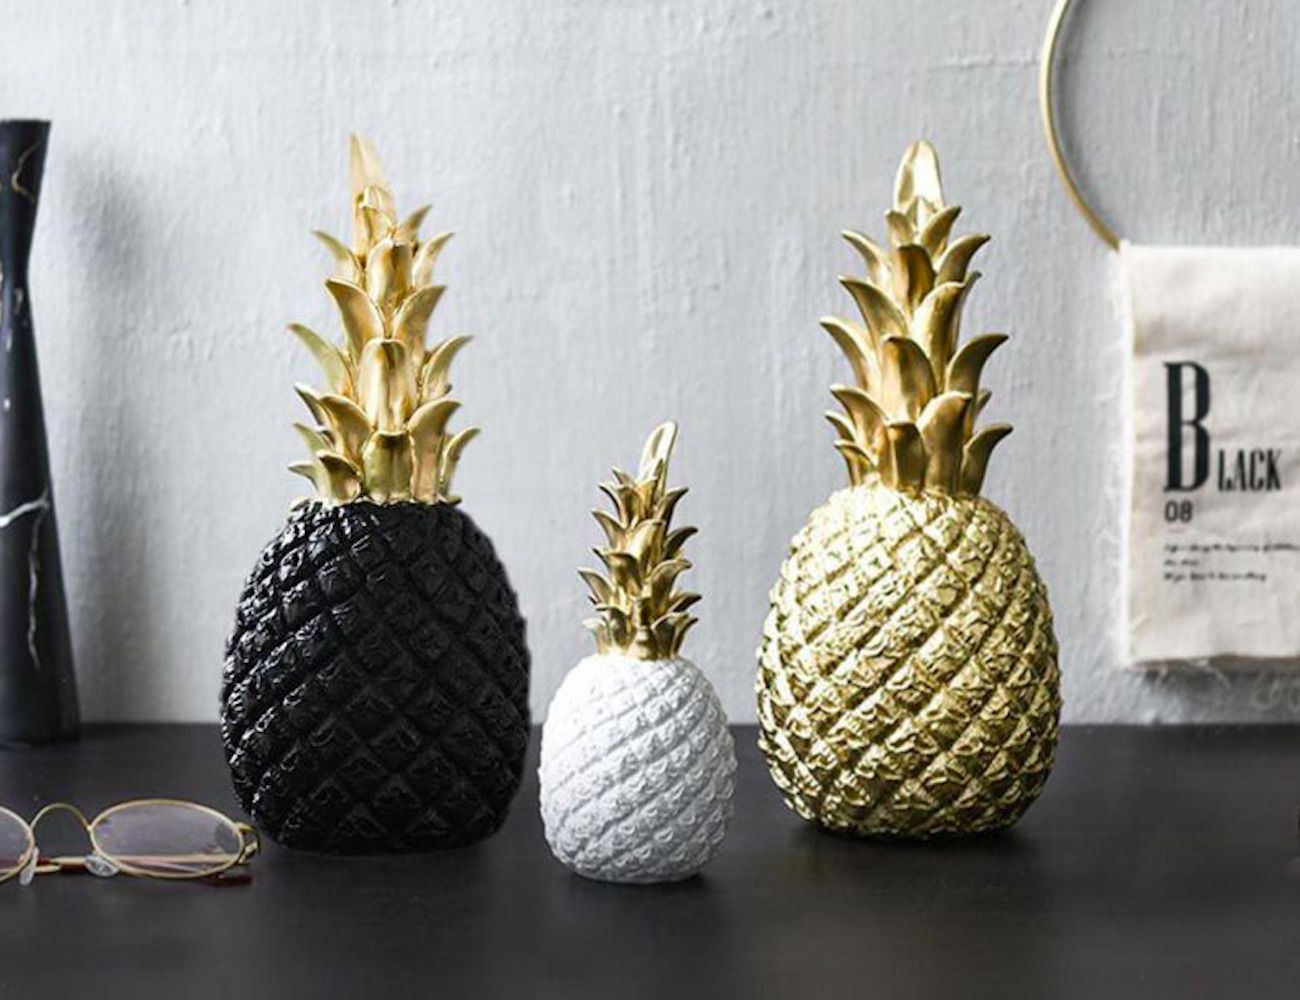 Golden Pineapple Display Prop offers an inviting welcome